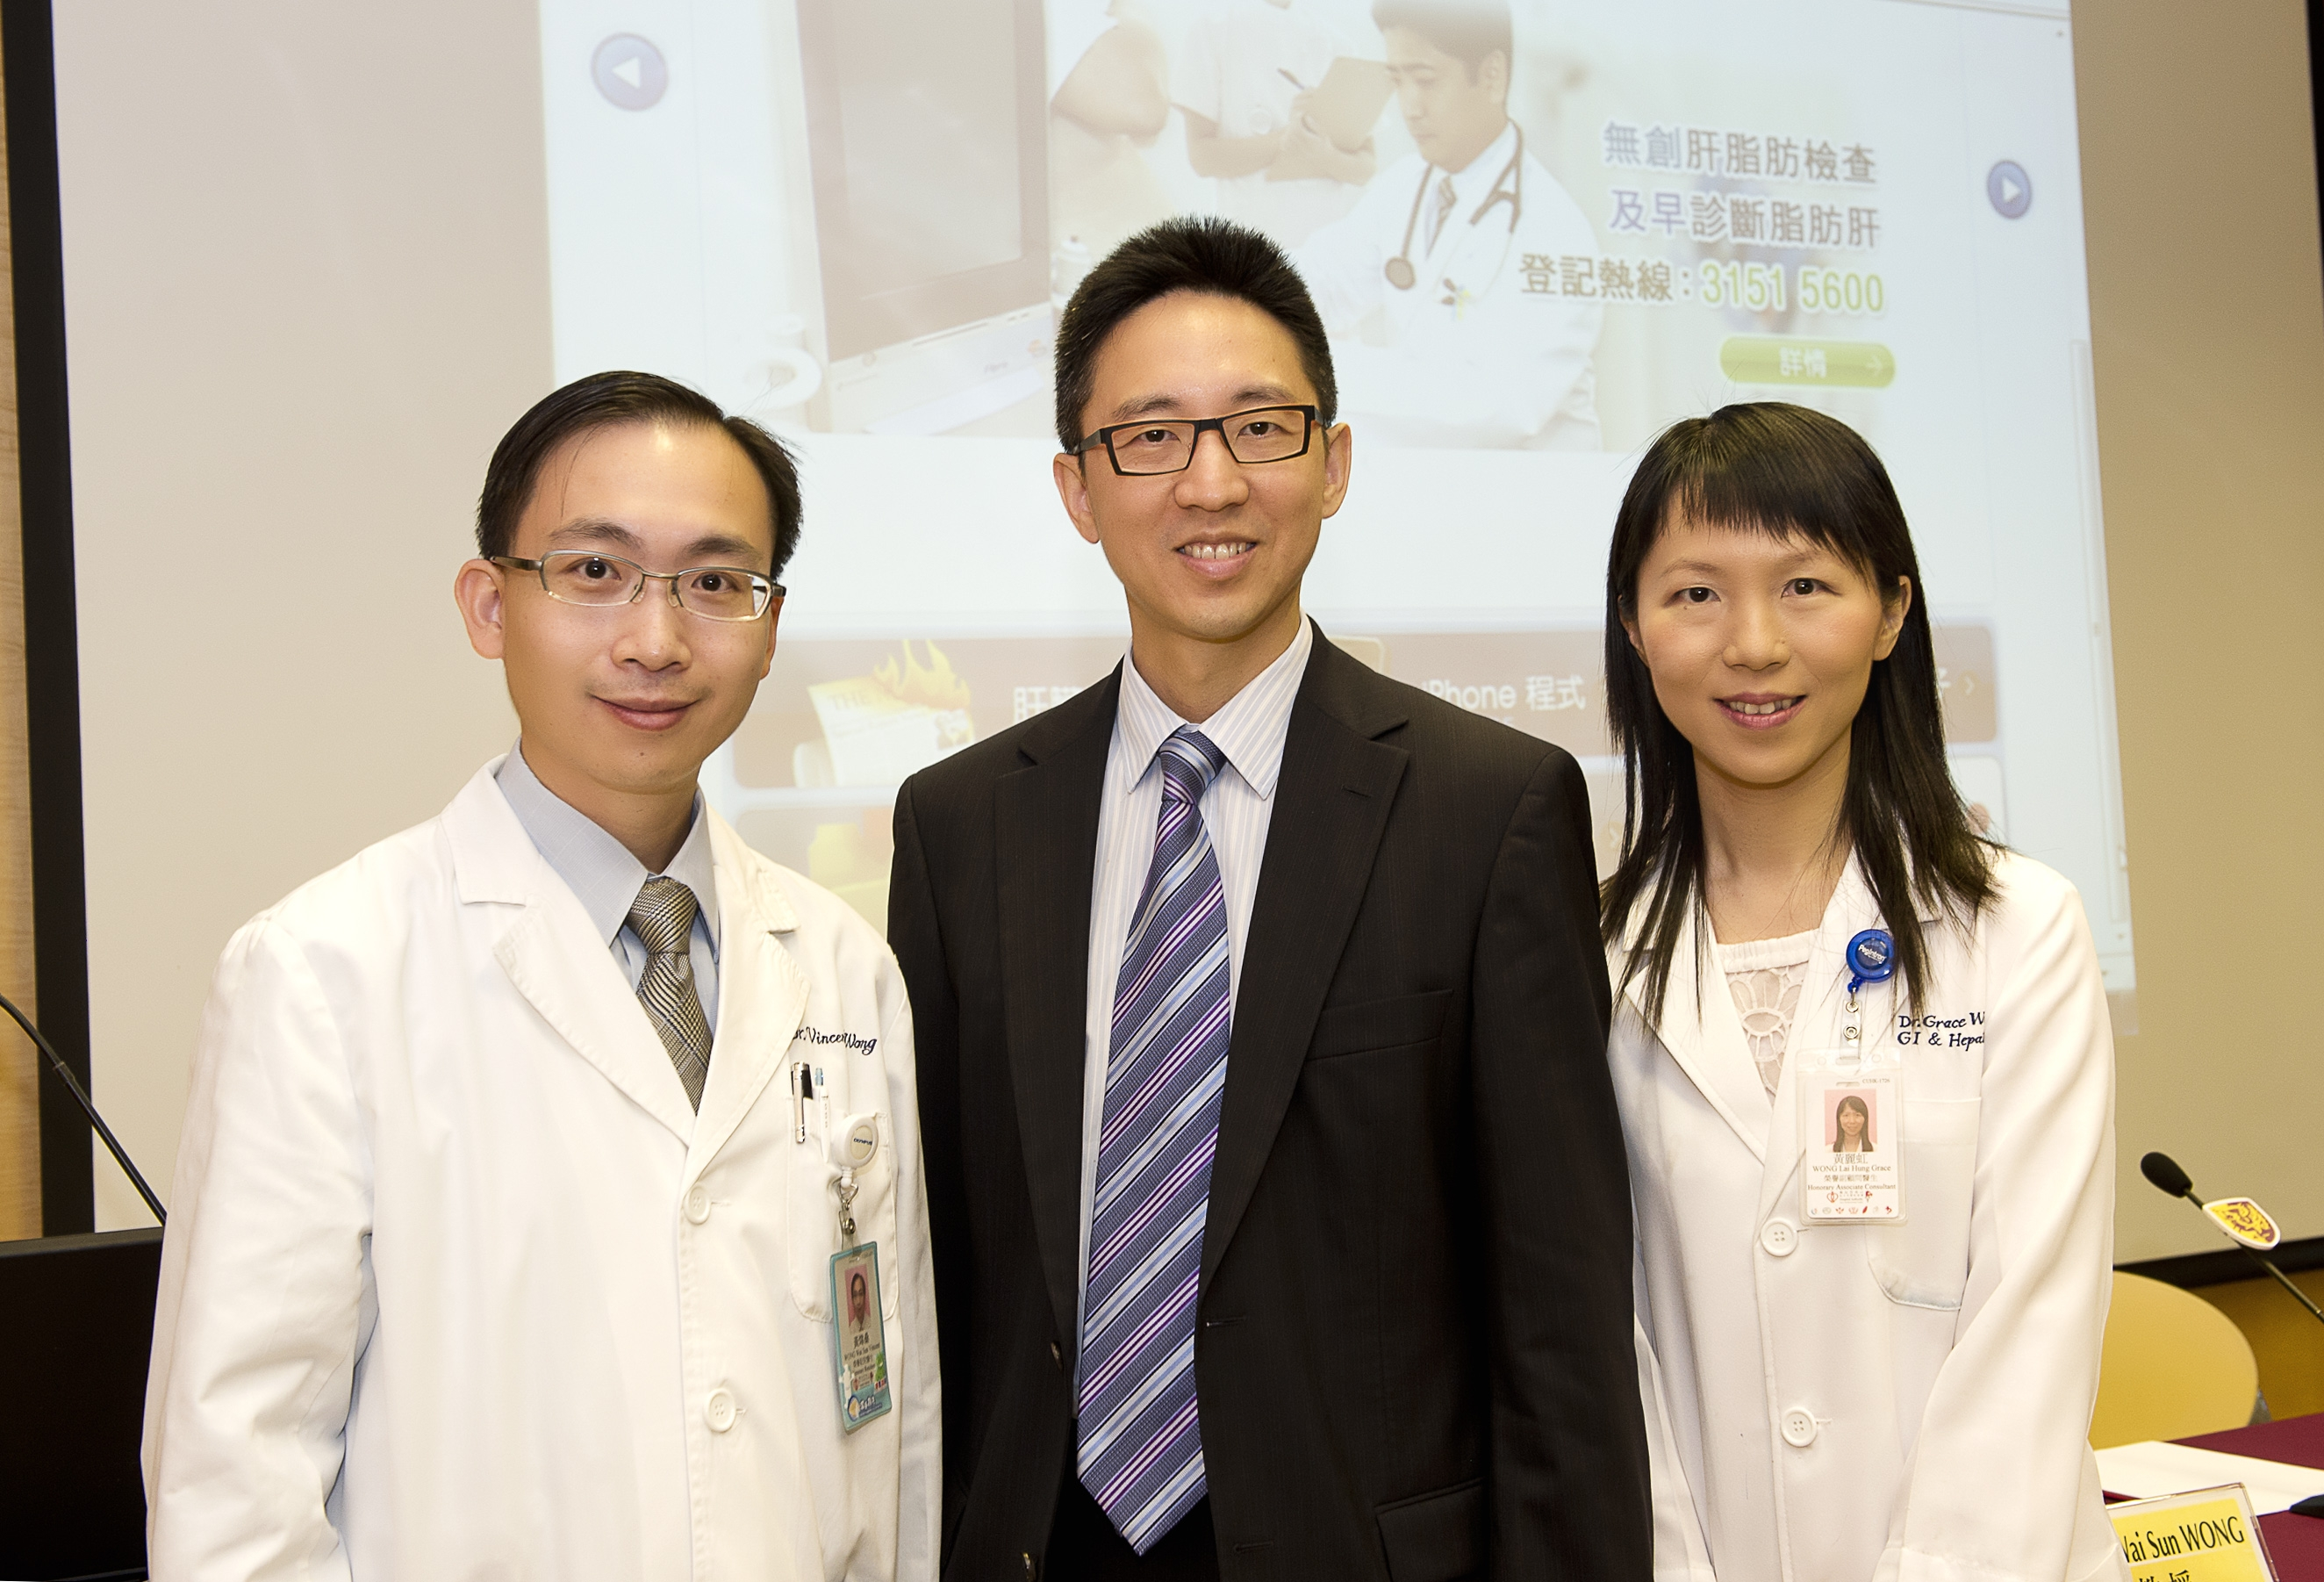 (from left) Professor Vincent Wong, Deputy Director, CUHK Center for Liver Health; Professor Henry Chan, Director of the Center and Professor Grace Wong, Associate Professor, Department of Medicine and Therapeutics, Faculty of Medicine of CUHK.